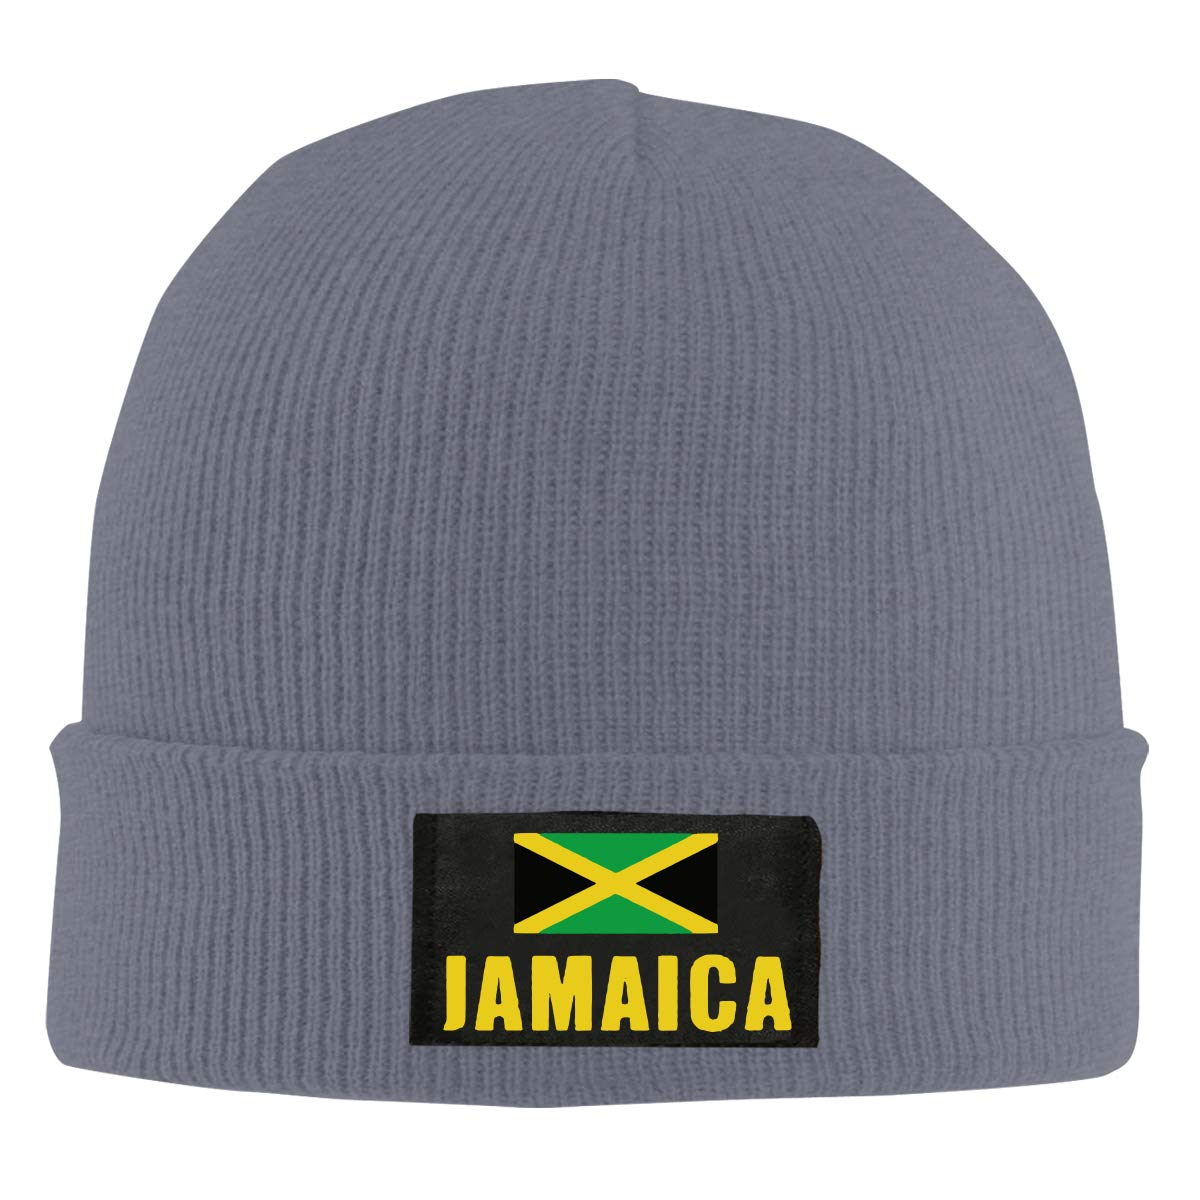 100/% Acrylic Thick Skiing Cap BF5Y6z/&MA Unisex Jamaica Flag Knitted Hat